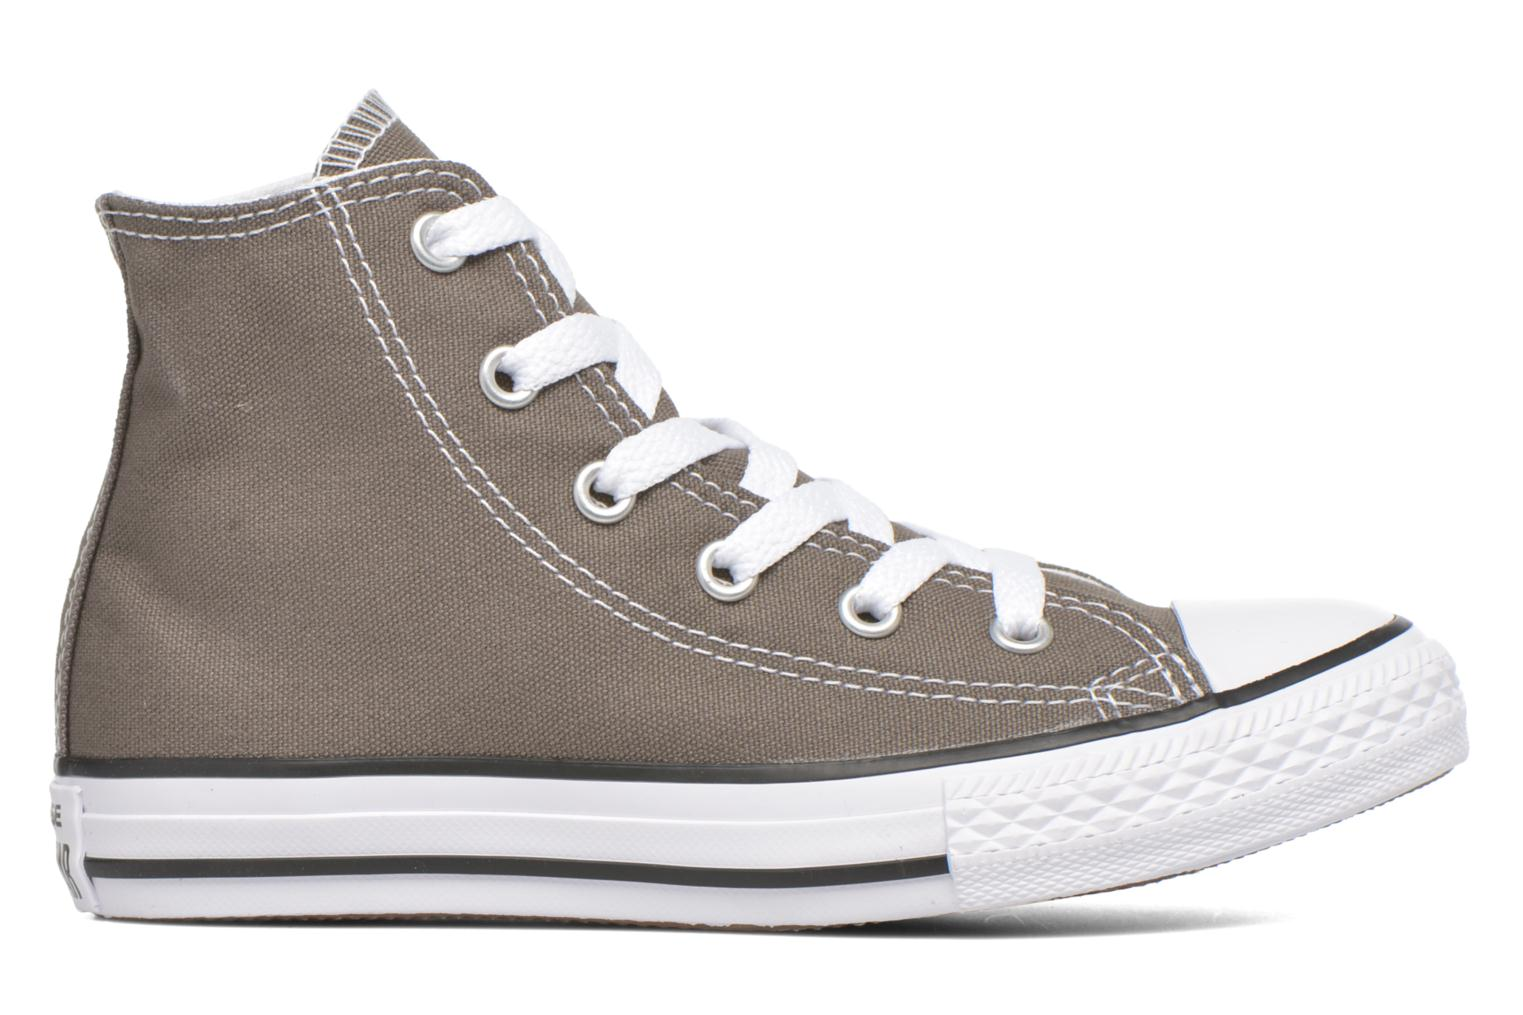 Chuck Taylor All Star Sp Hi Charcoal